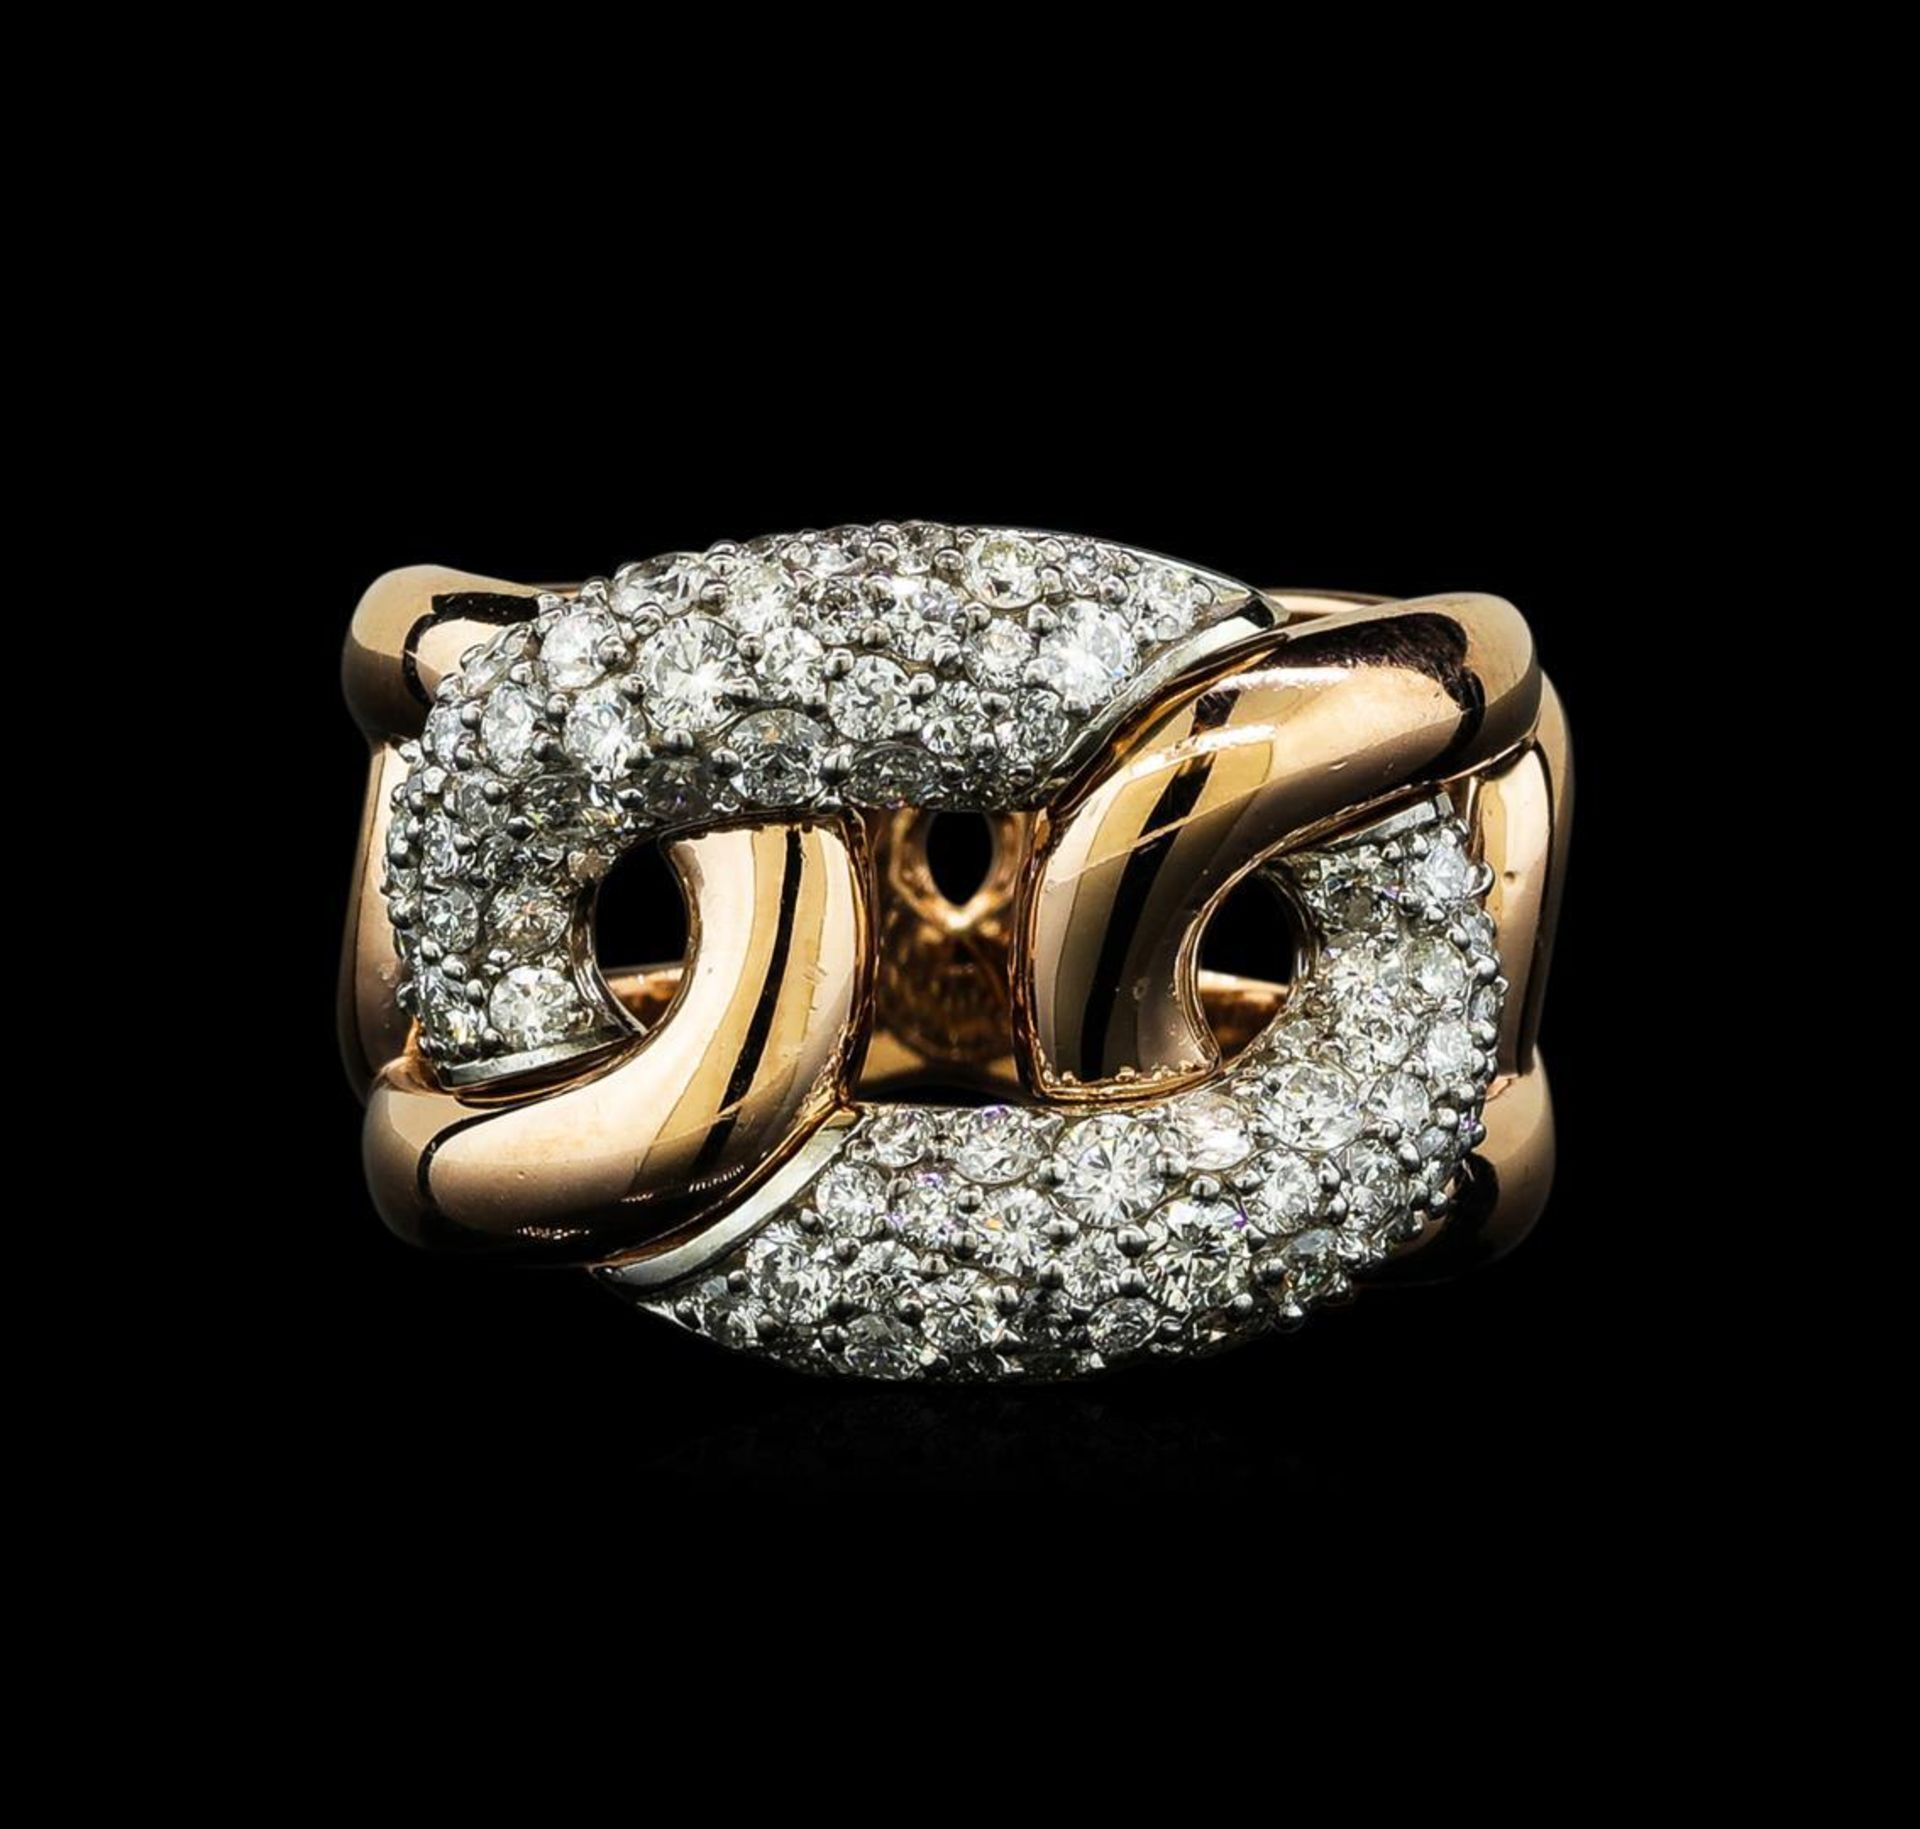 1.35 ctw Diamond Ring - 14KT Rose and White Gold - Image 2 of 5